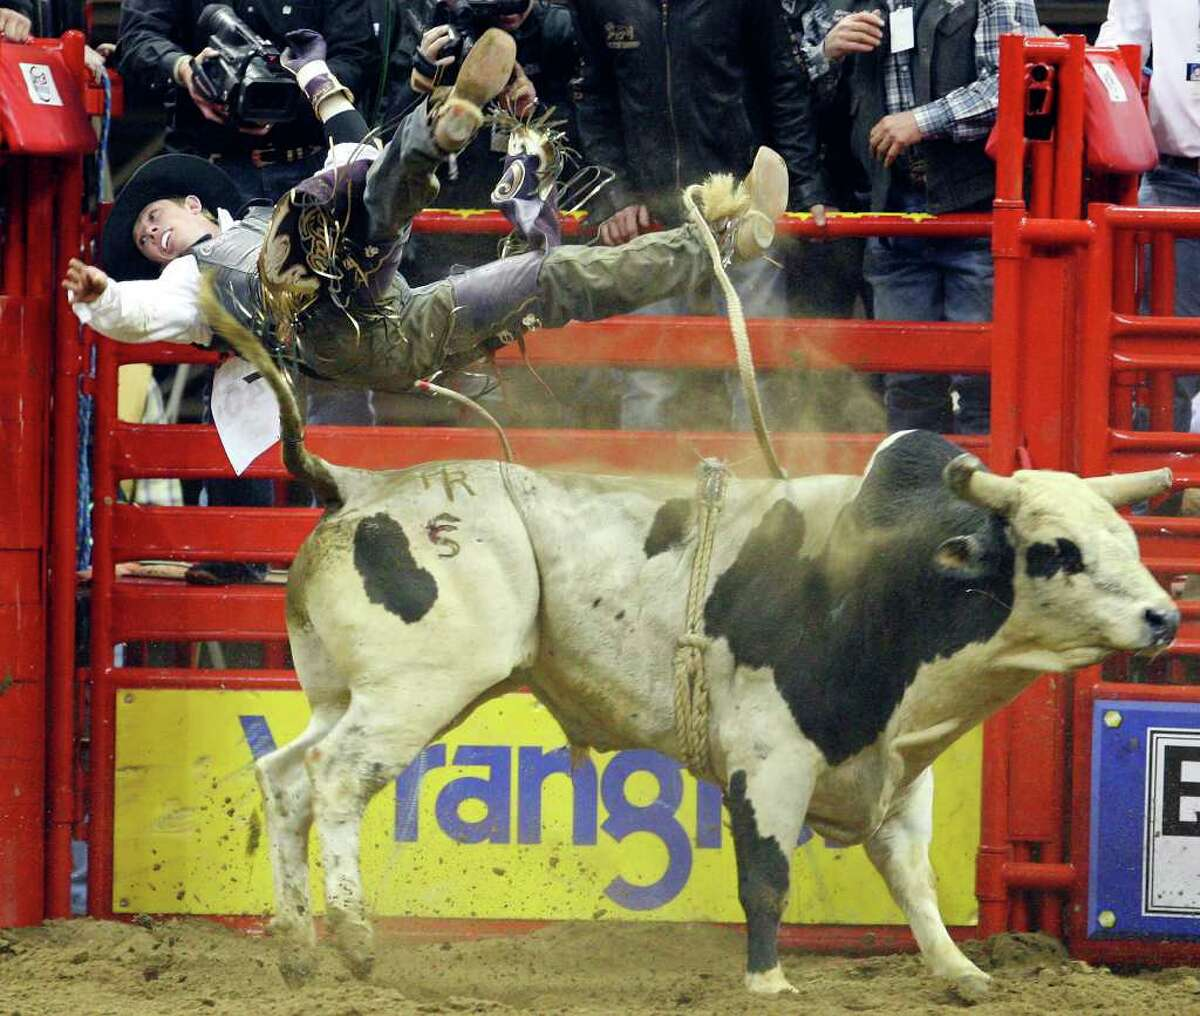 Steve Woolsey, from Payson, Utah, is thrown off his bull in the Xtreme Bulls event at AT&T Center.